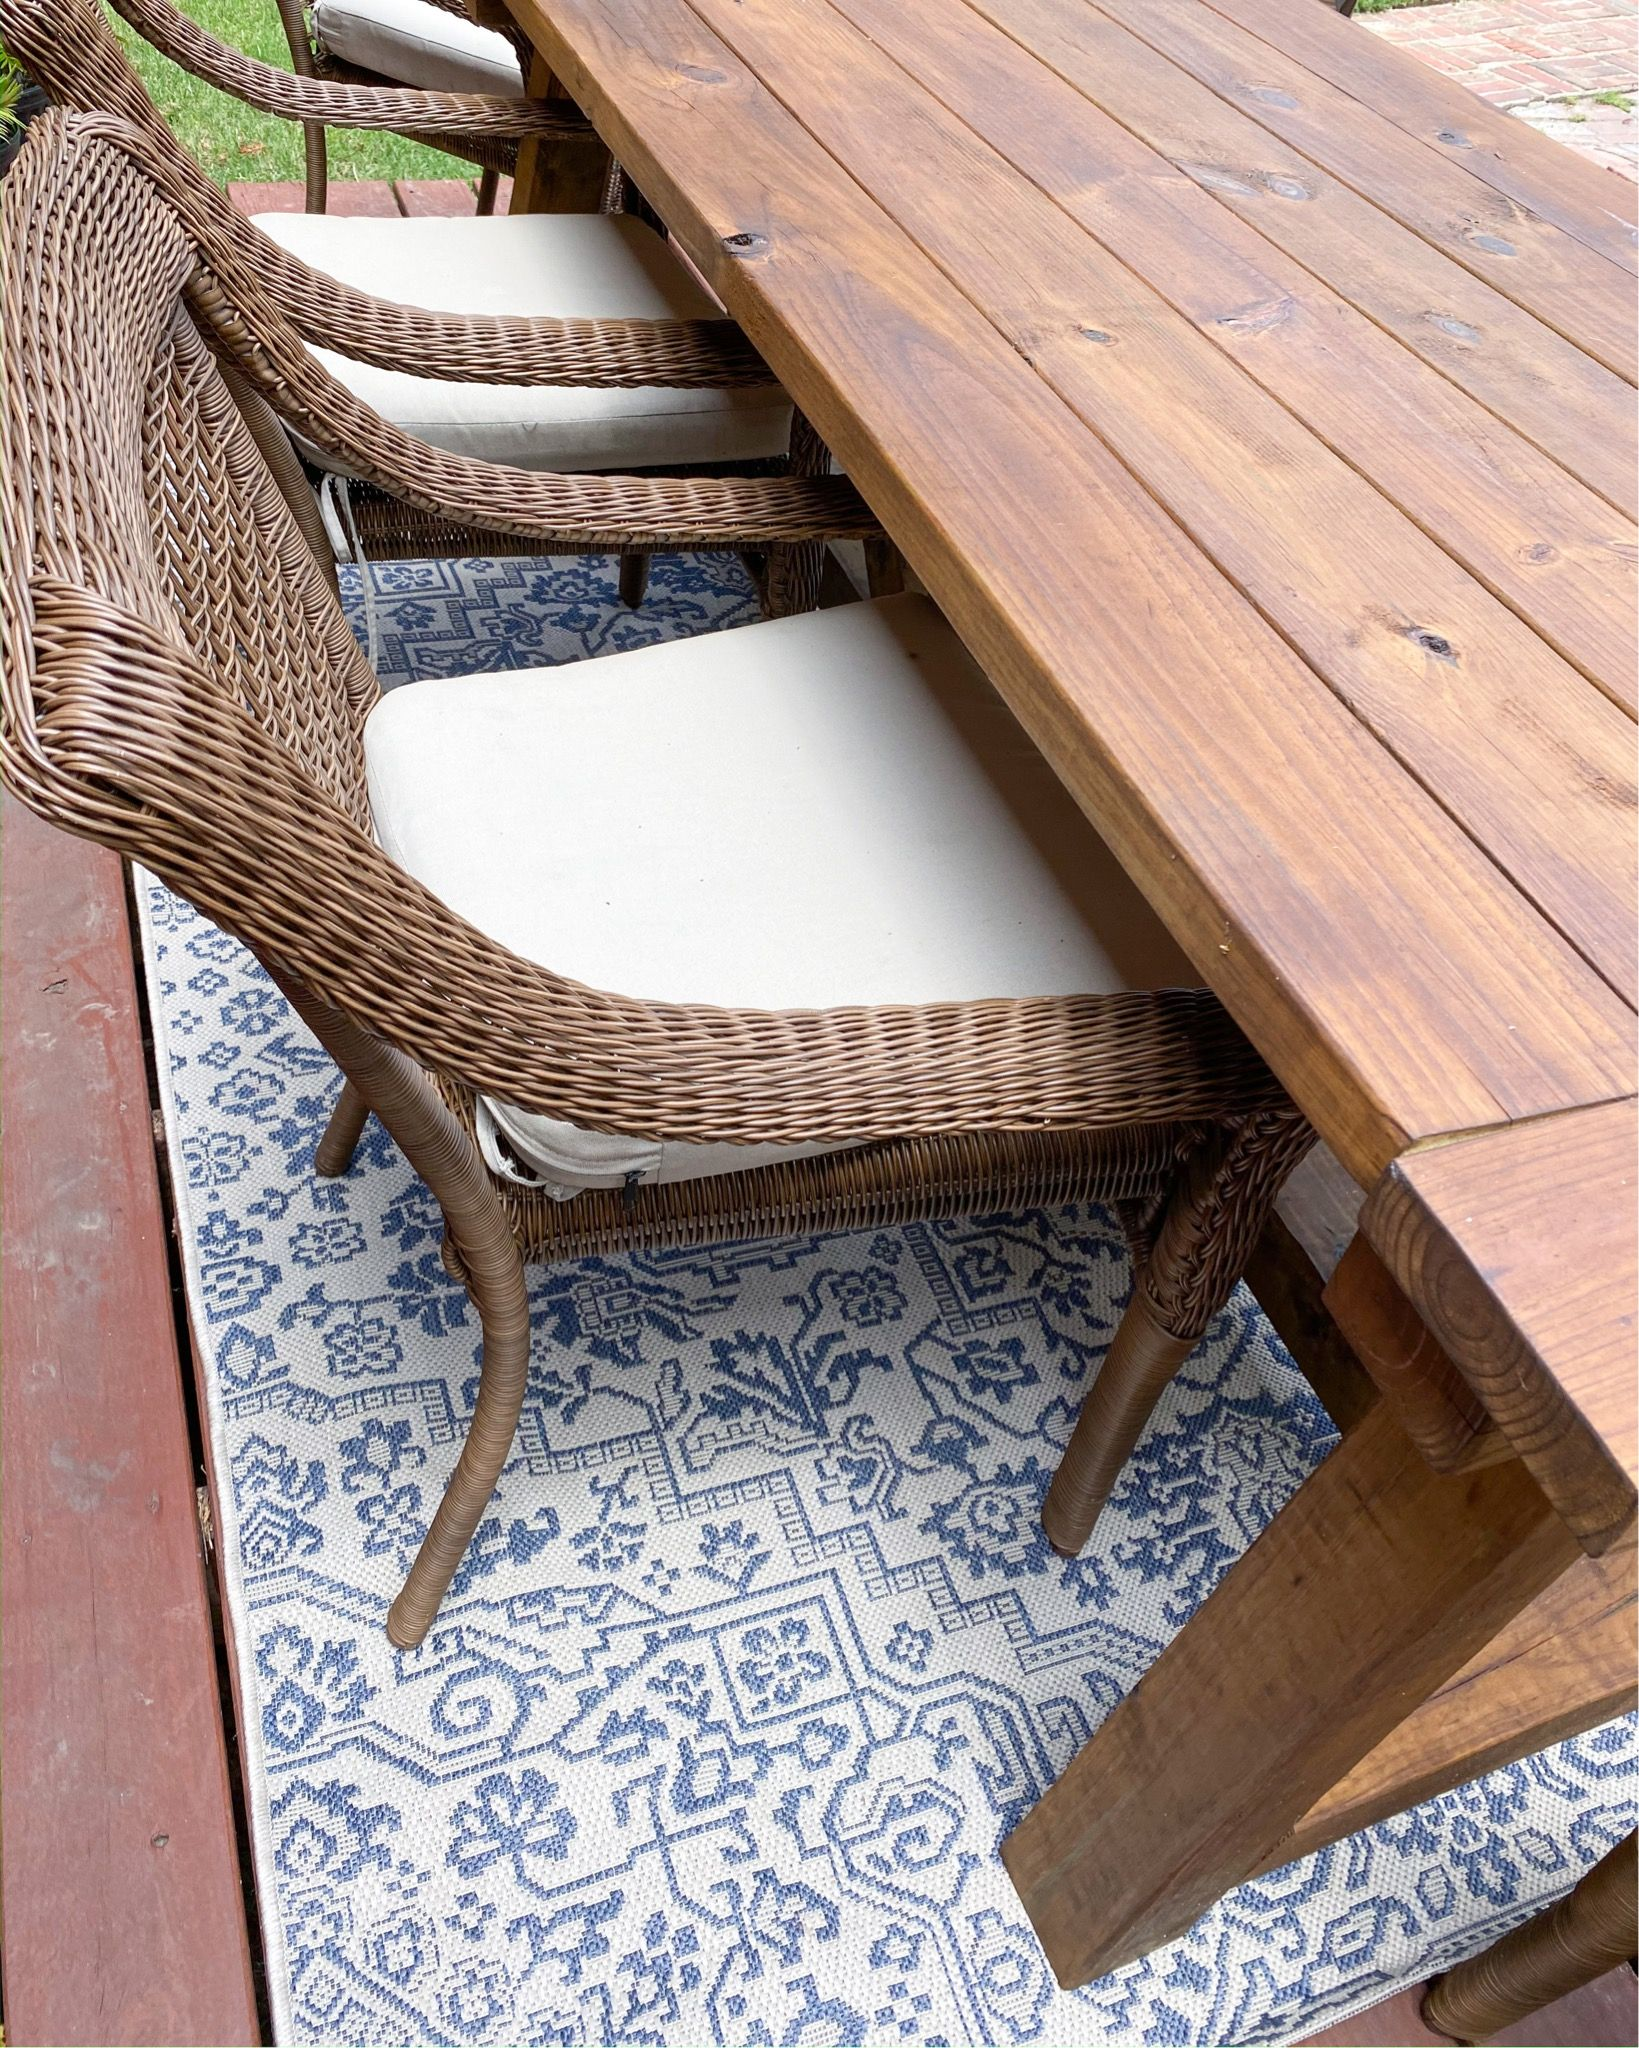 Farmhouse Style Patio Table Outdoor Rug Under 75 Exact Item Linked In 2020 Rug Under Dining Table Outdoor Rugs Patio Dining Table